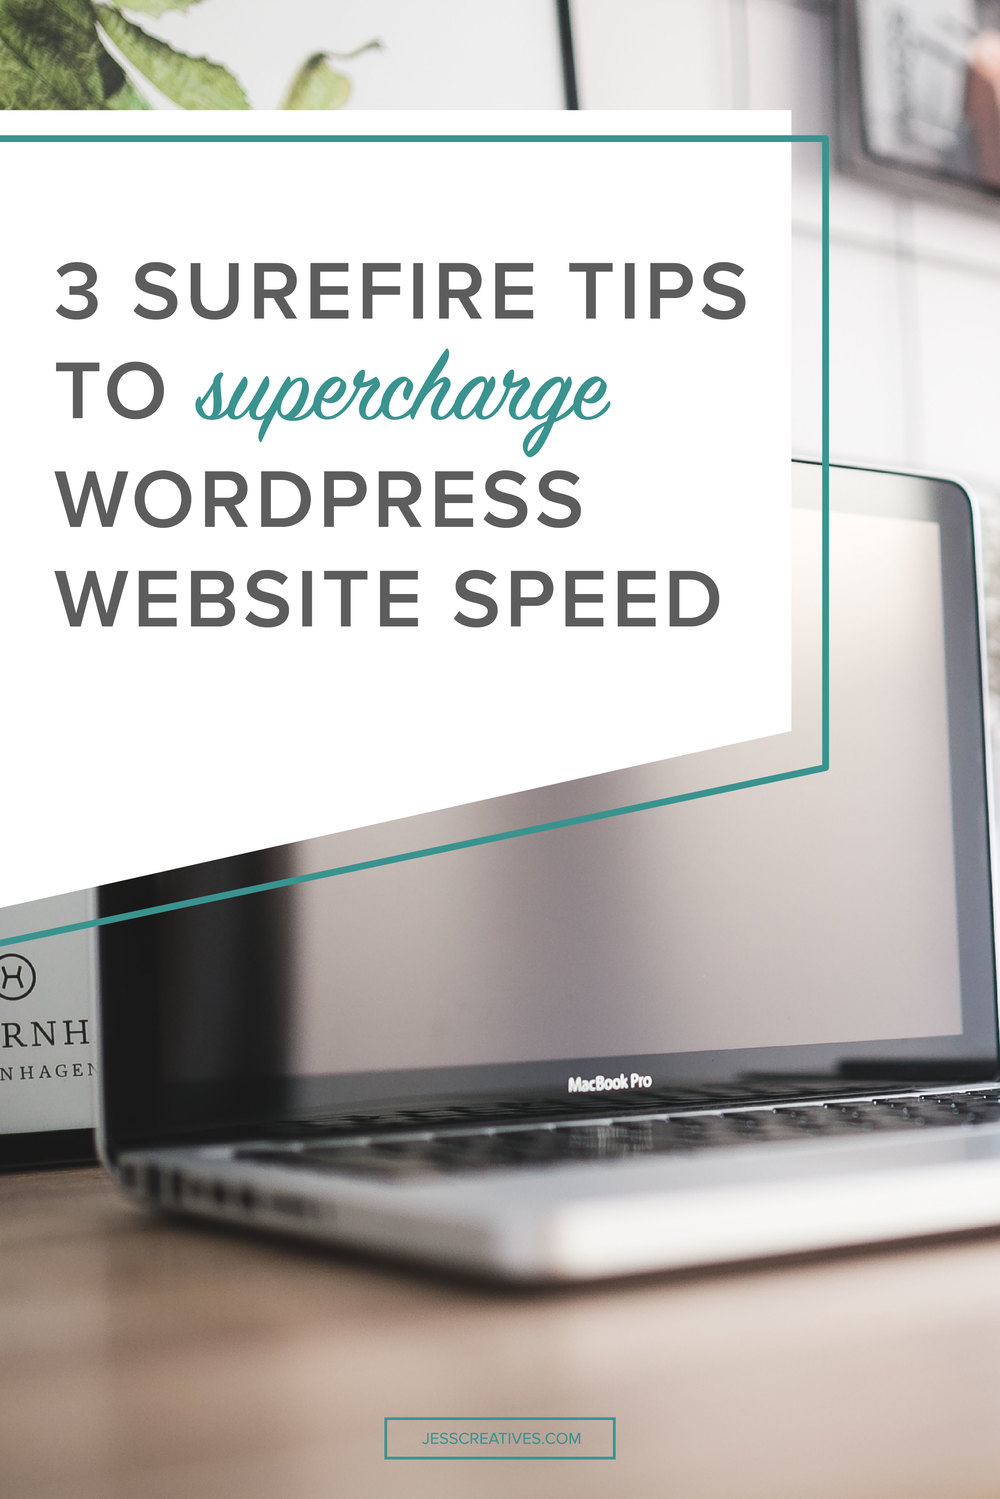 As consumers, nothing is more frustrating than a slow-loading website. As business owners, the speed of our website is important so we don't lose our viewers. I see many Wordpress users asking why their Wordpress site is loading so slowly, and what can they do to fix it.